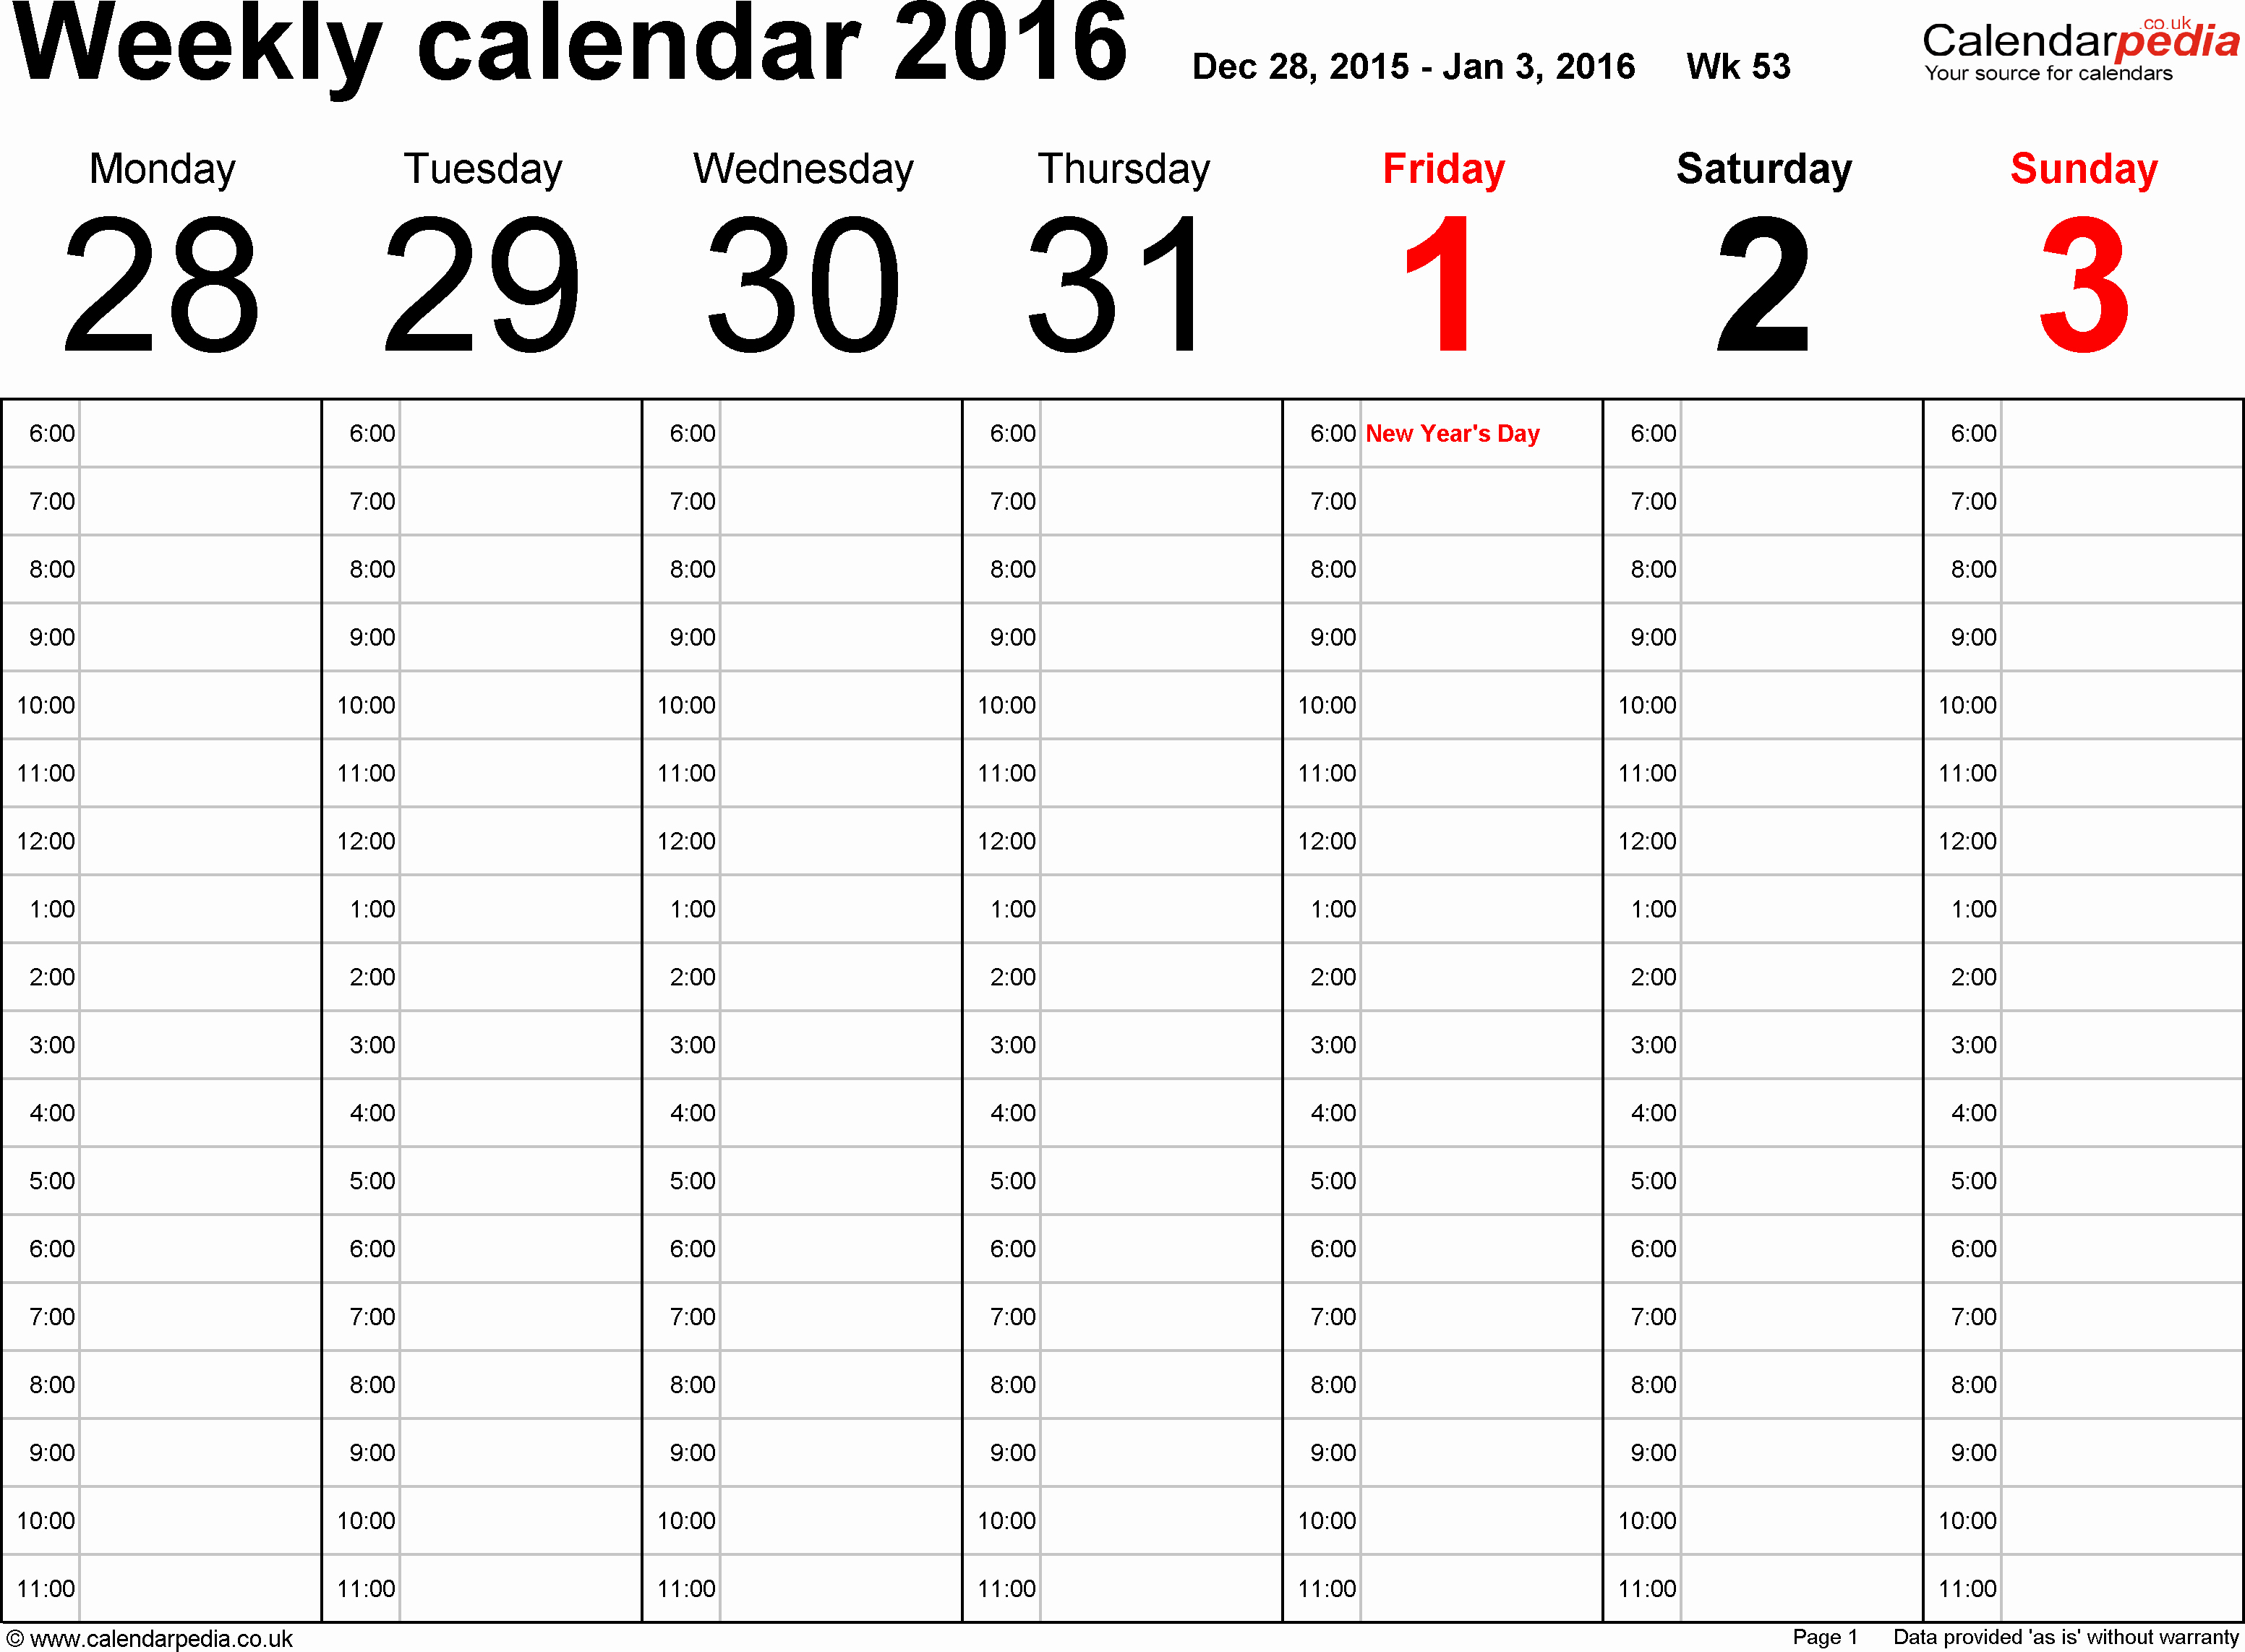 Weekly Calendar Template 2017 Inspirational Weekly Calendar 2016 Uk Free Printable Templates for Excel